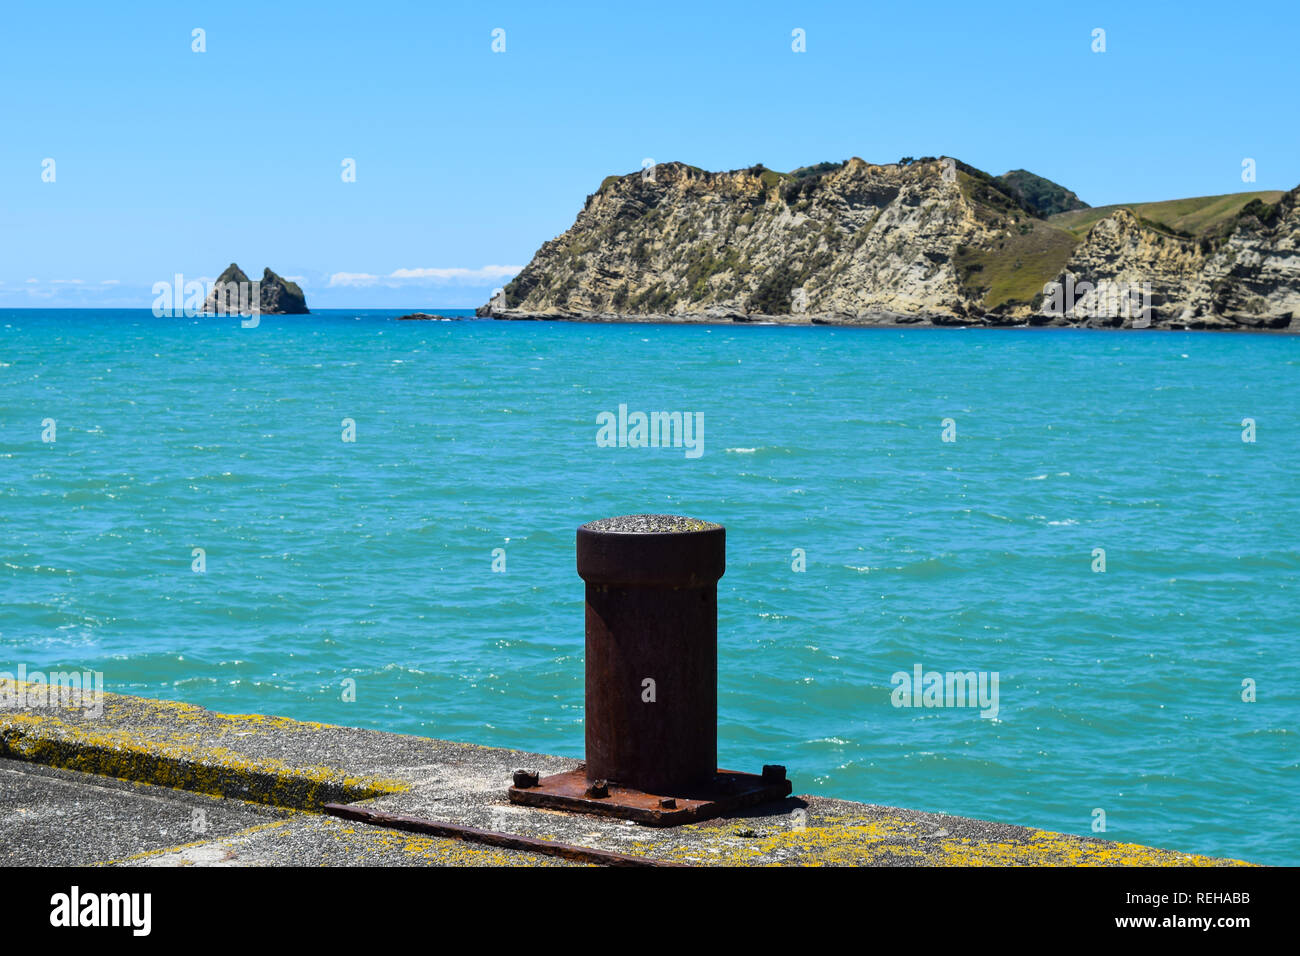 The post at the end of the long walkway along the wharf in Tolaga Bay, New Zealand - Stock Image